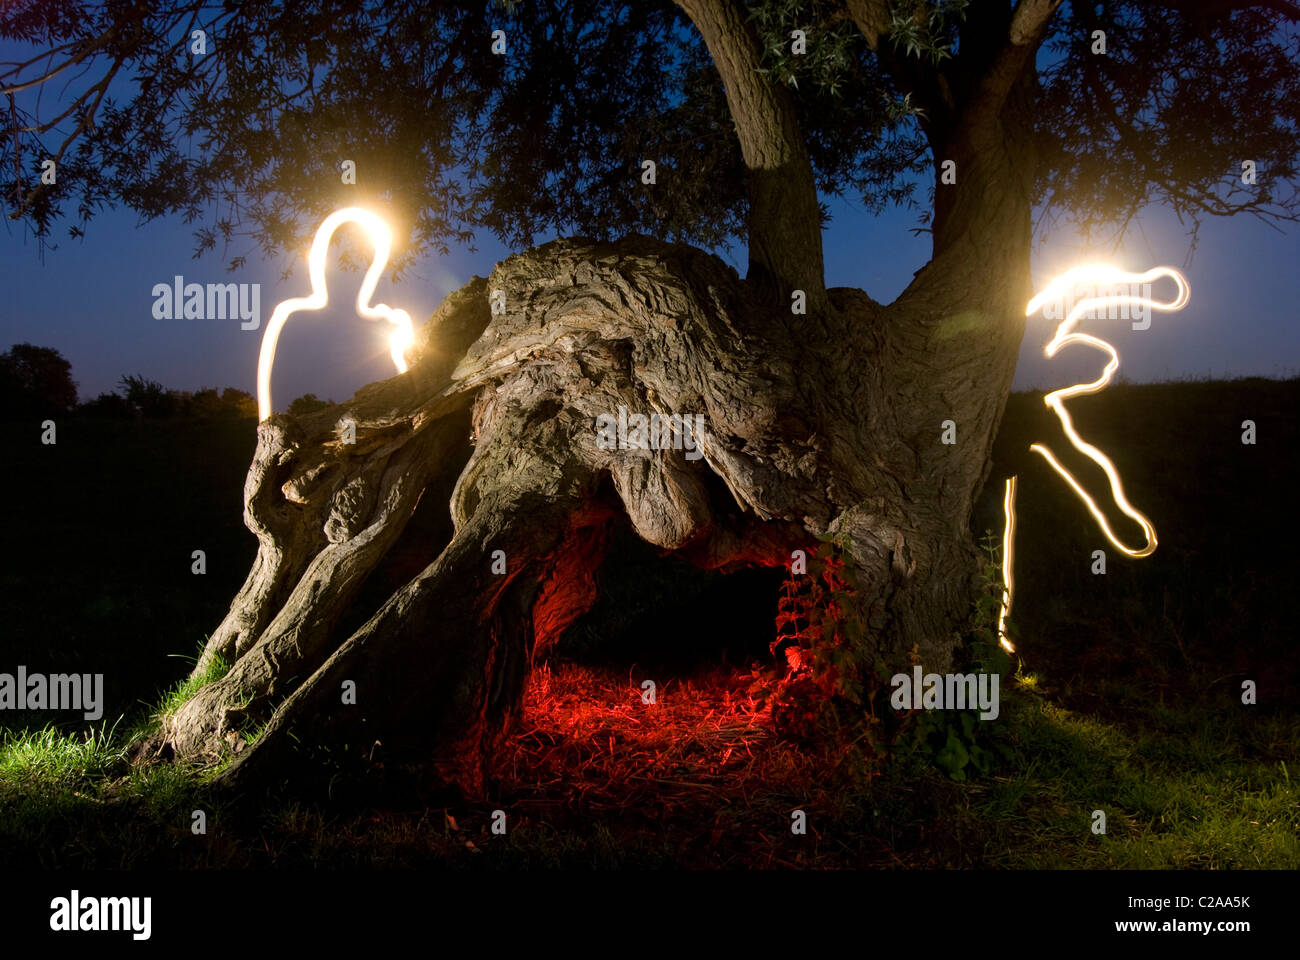 Creative light painting around a deformed tree at night time - Stock Image